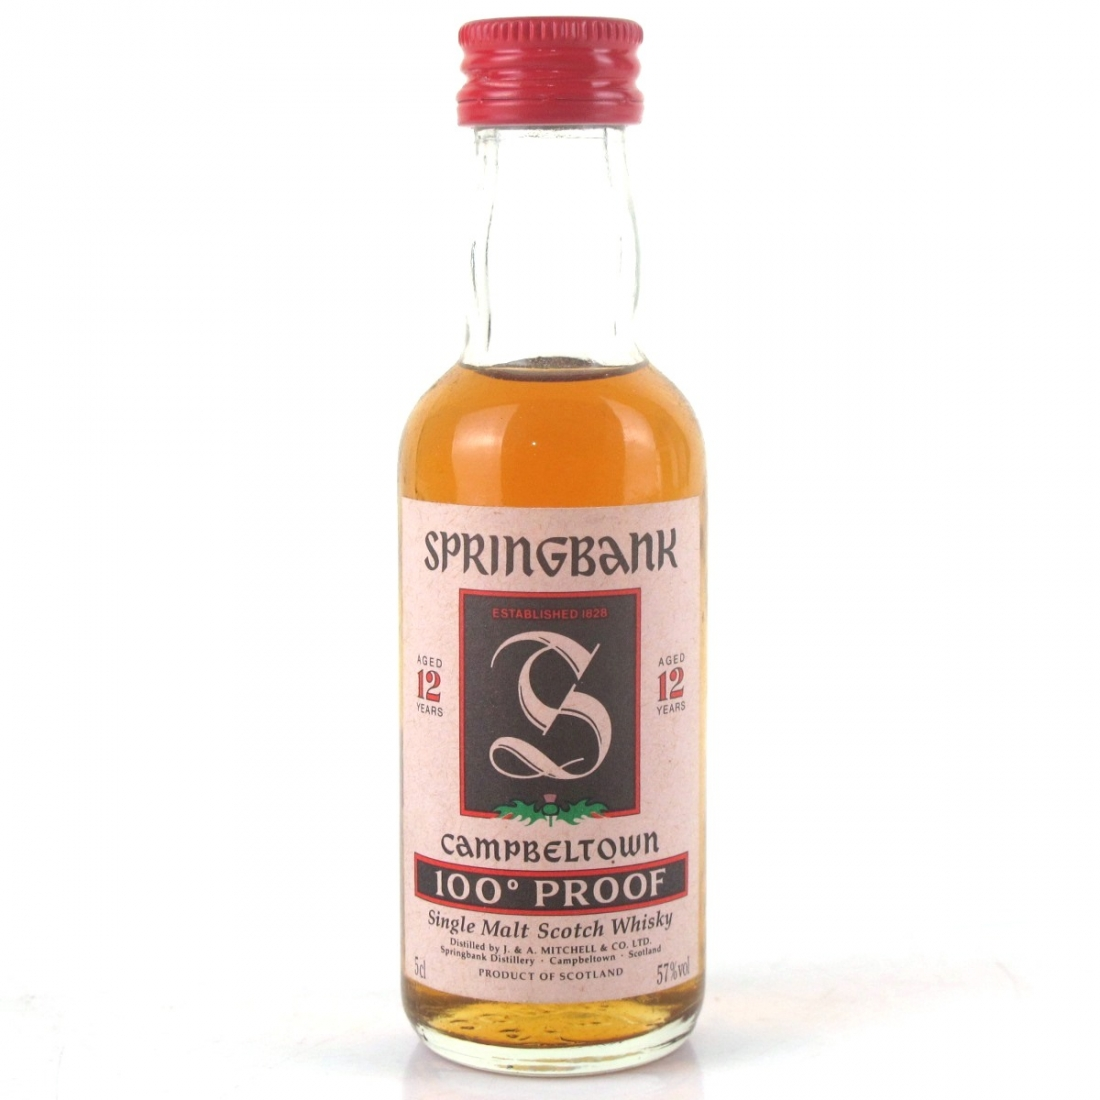 Springbank 12 Year Old 100 Proof Miniature 5cl